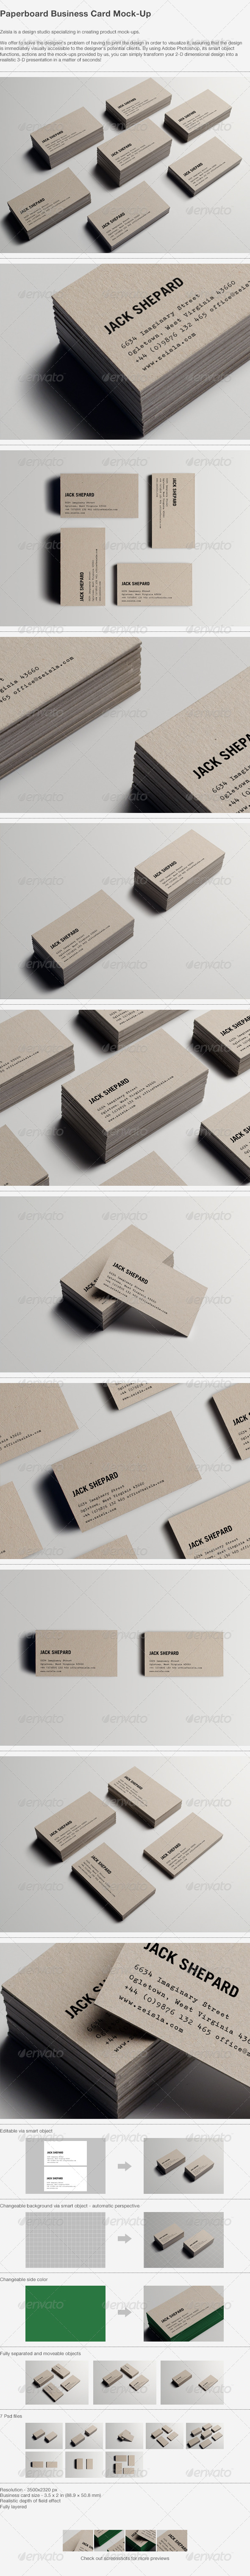 GraphicRiver Paperboard Business Card Mock-up 4932009